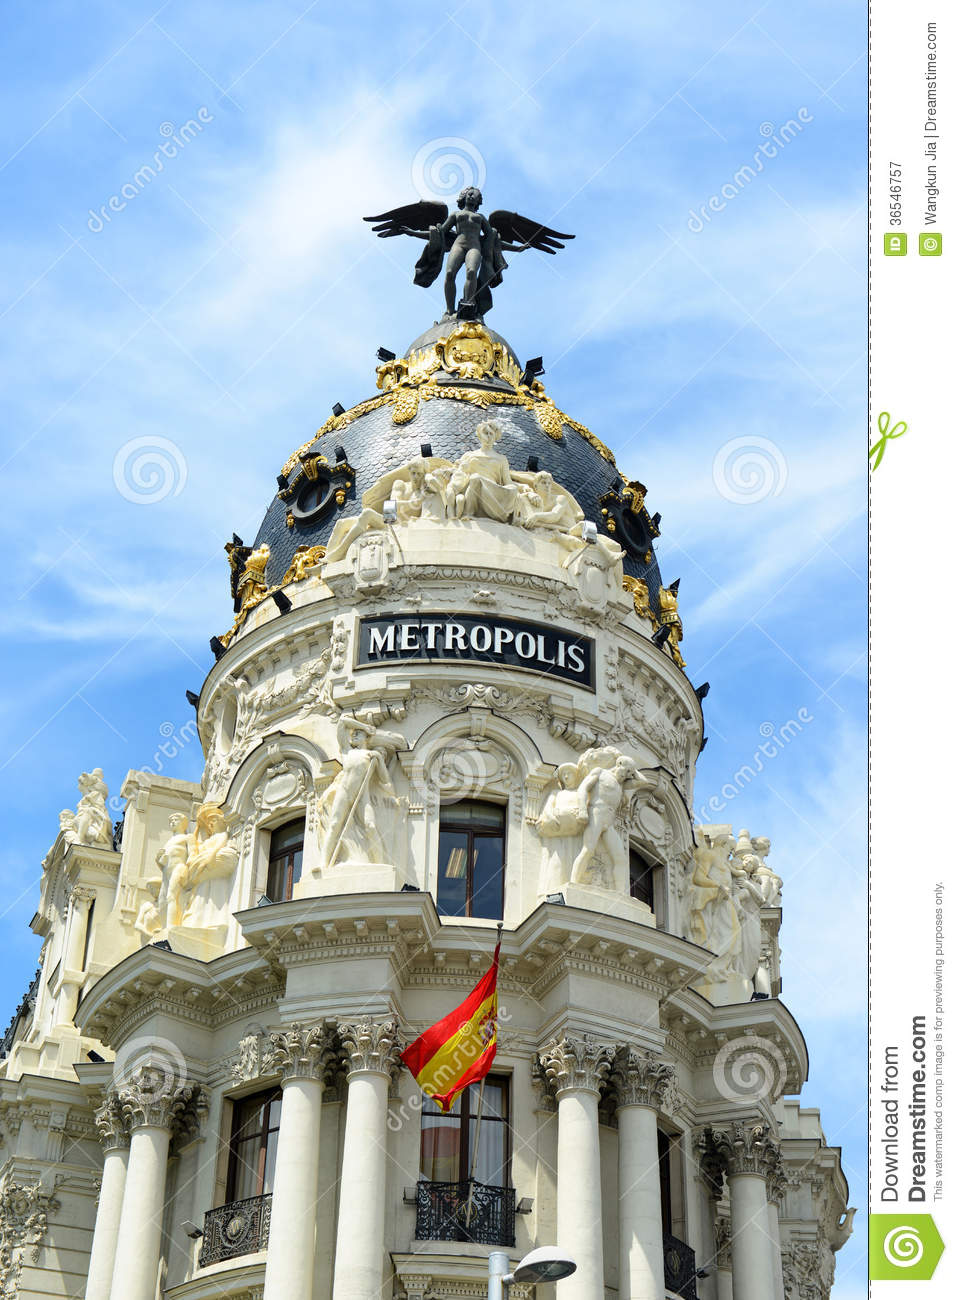 metropolis building madrid spain editorial photography image of